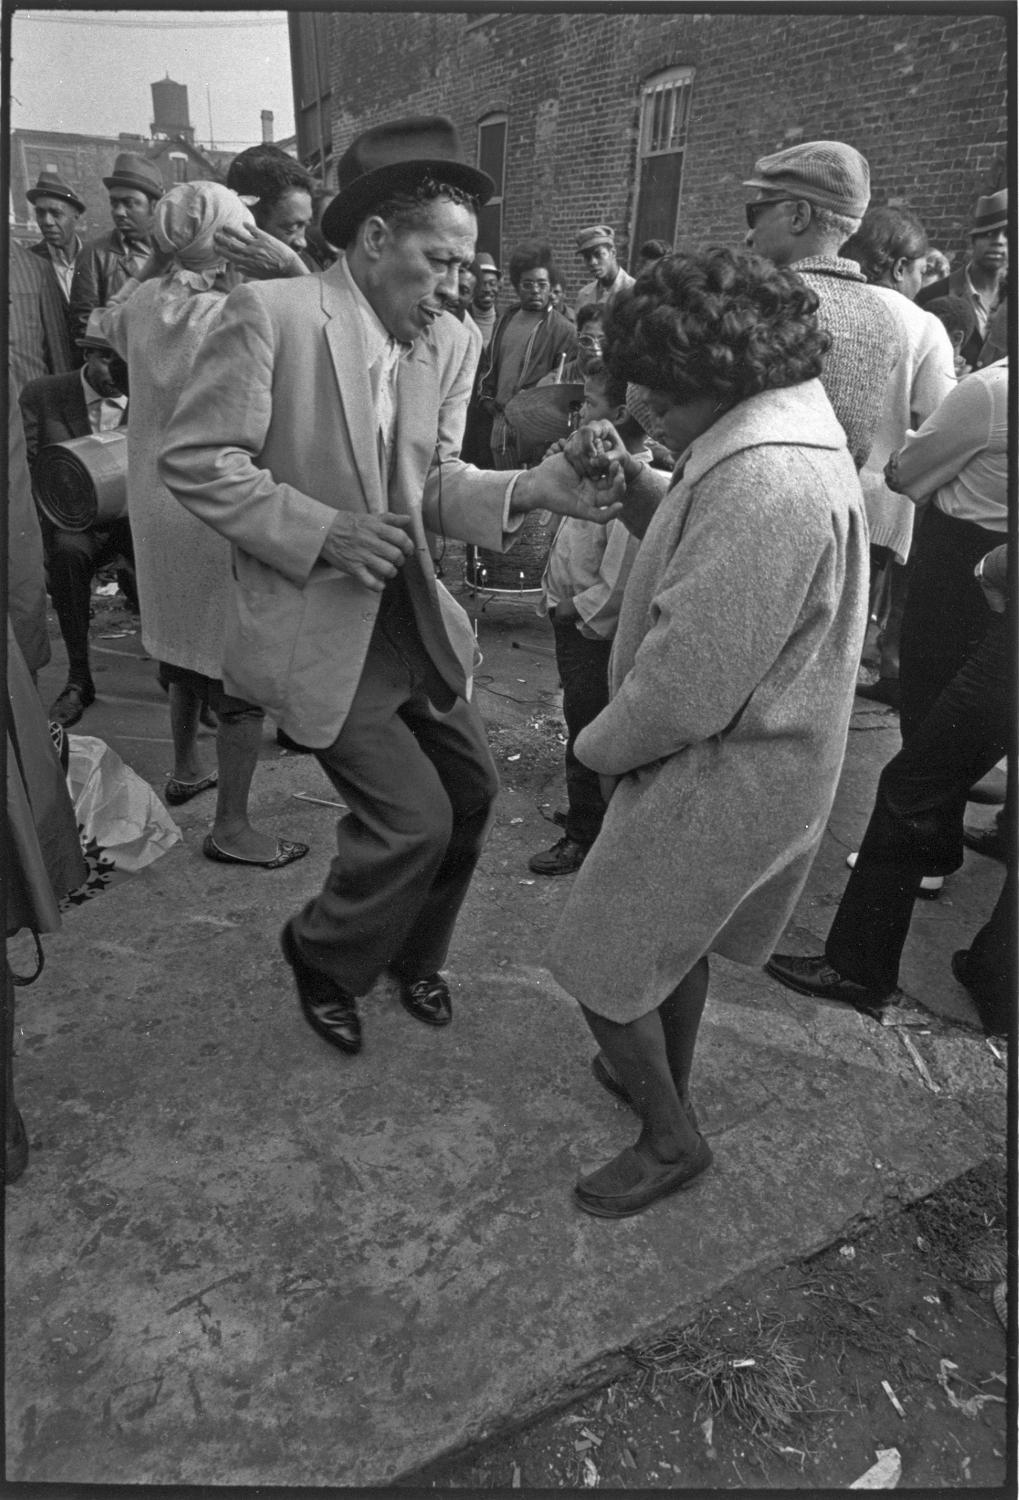 chicagohistorymuseum:  People dancing near Peoria St. between Maxwell St. and 14th St. Undated photograph by James Newberry.  Want a copy of this photo? > Visit our Rights and Reproduction Department and give them this number: ICHi-35008.